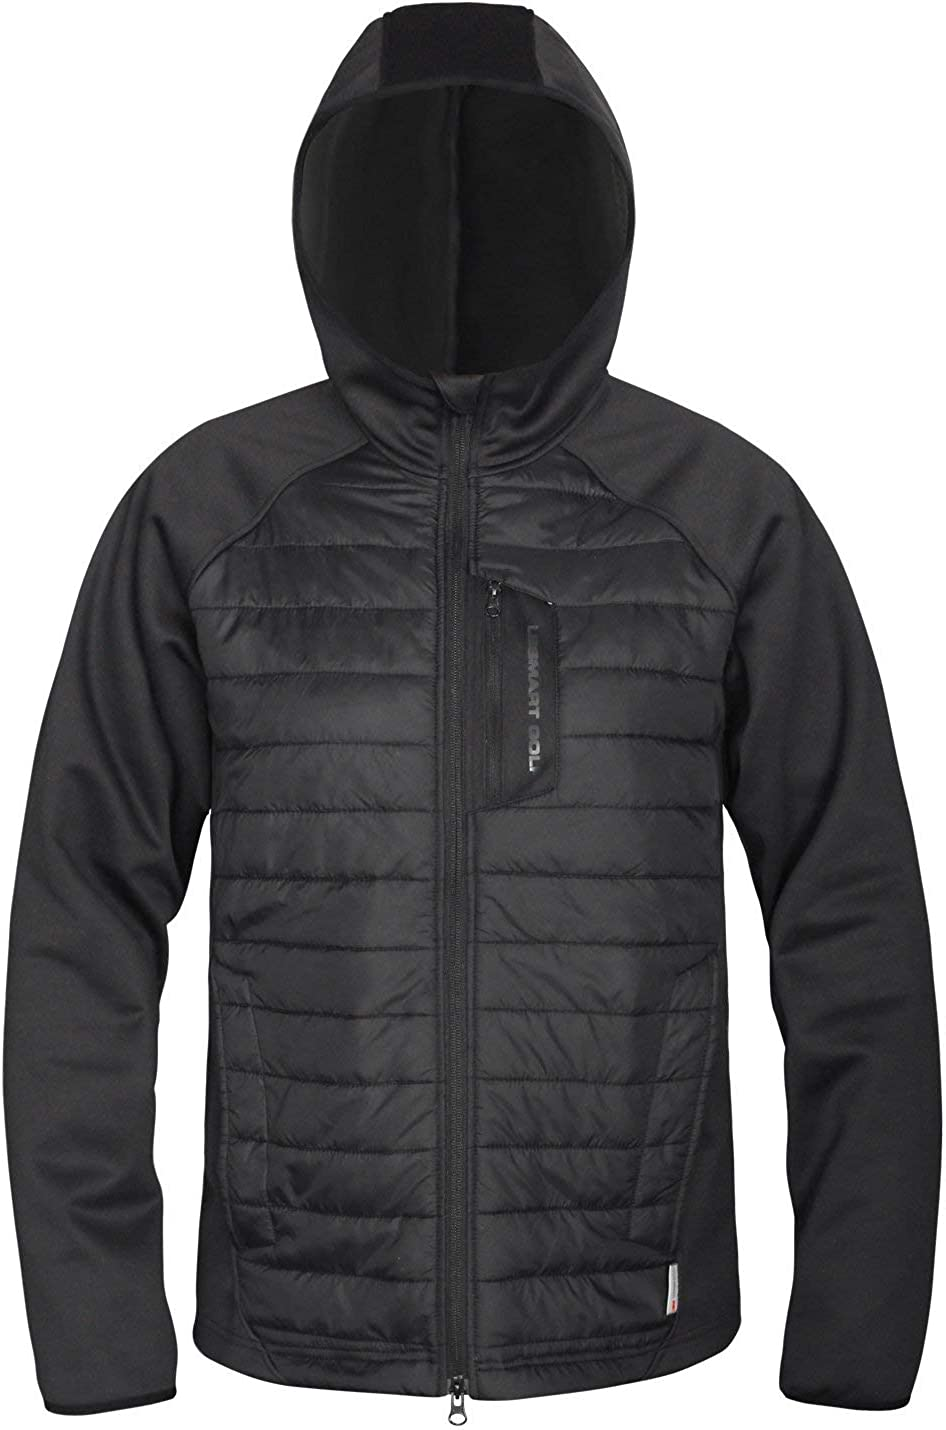 Lesmart Mens Hybrid Jacket Quilted Tech Warm Coat Hooded Windproof Water Repellent Winter Padded Coat